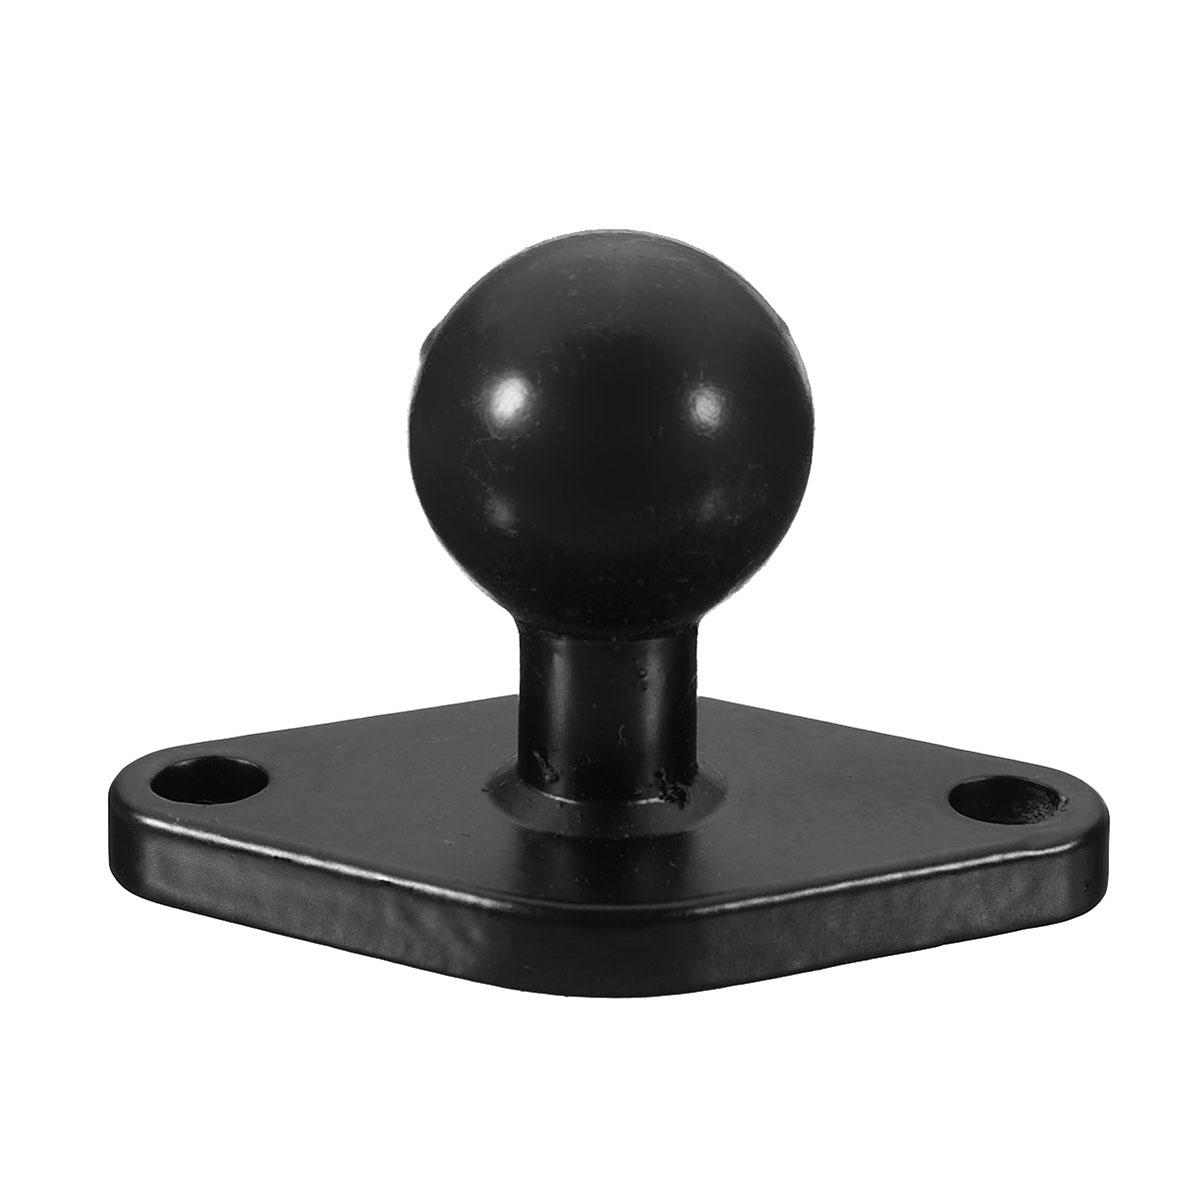 Black Motorcycle GPS Holder Mounting Aluminum 1inch Ball with Diamond Shape Plate